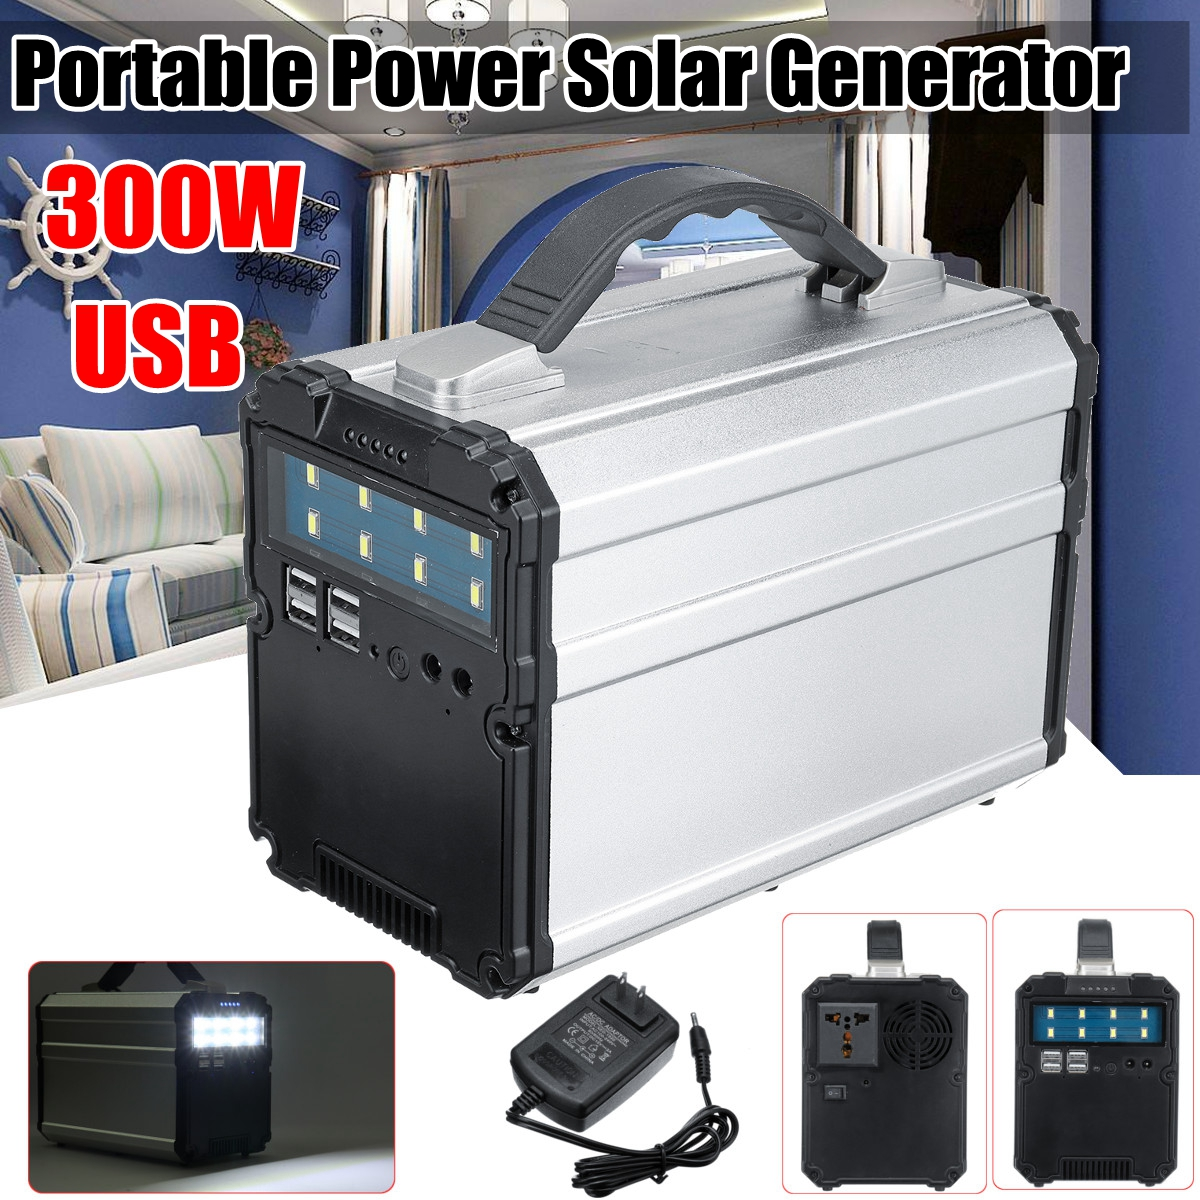 300WH 300W 12V 15A Inverter Home Outdoor Portable solar generator Power Storage faster USB charger